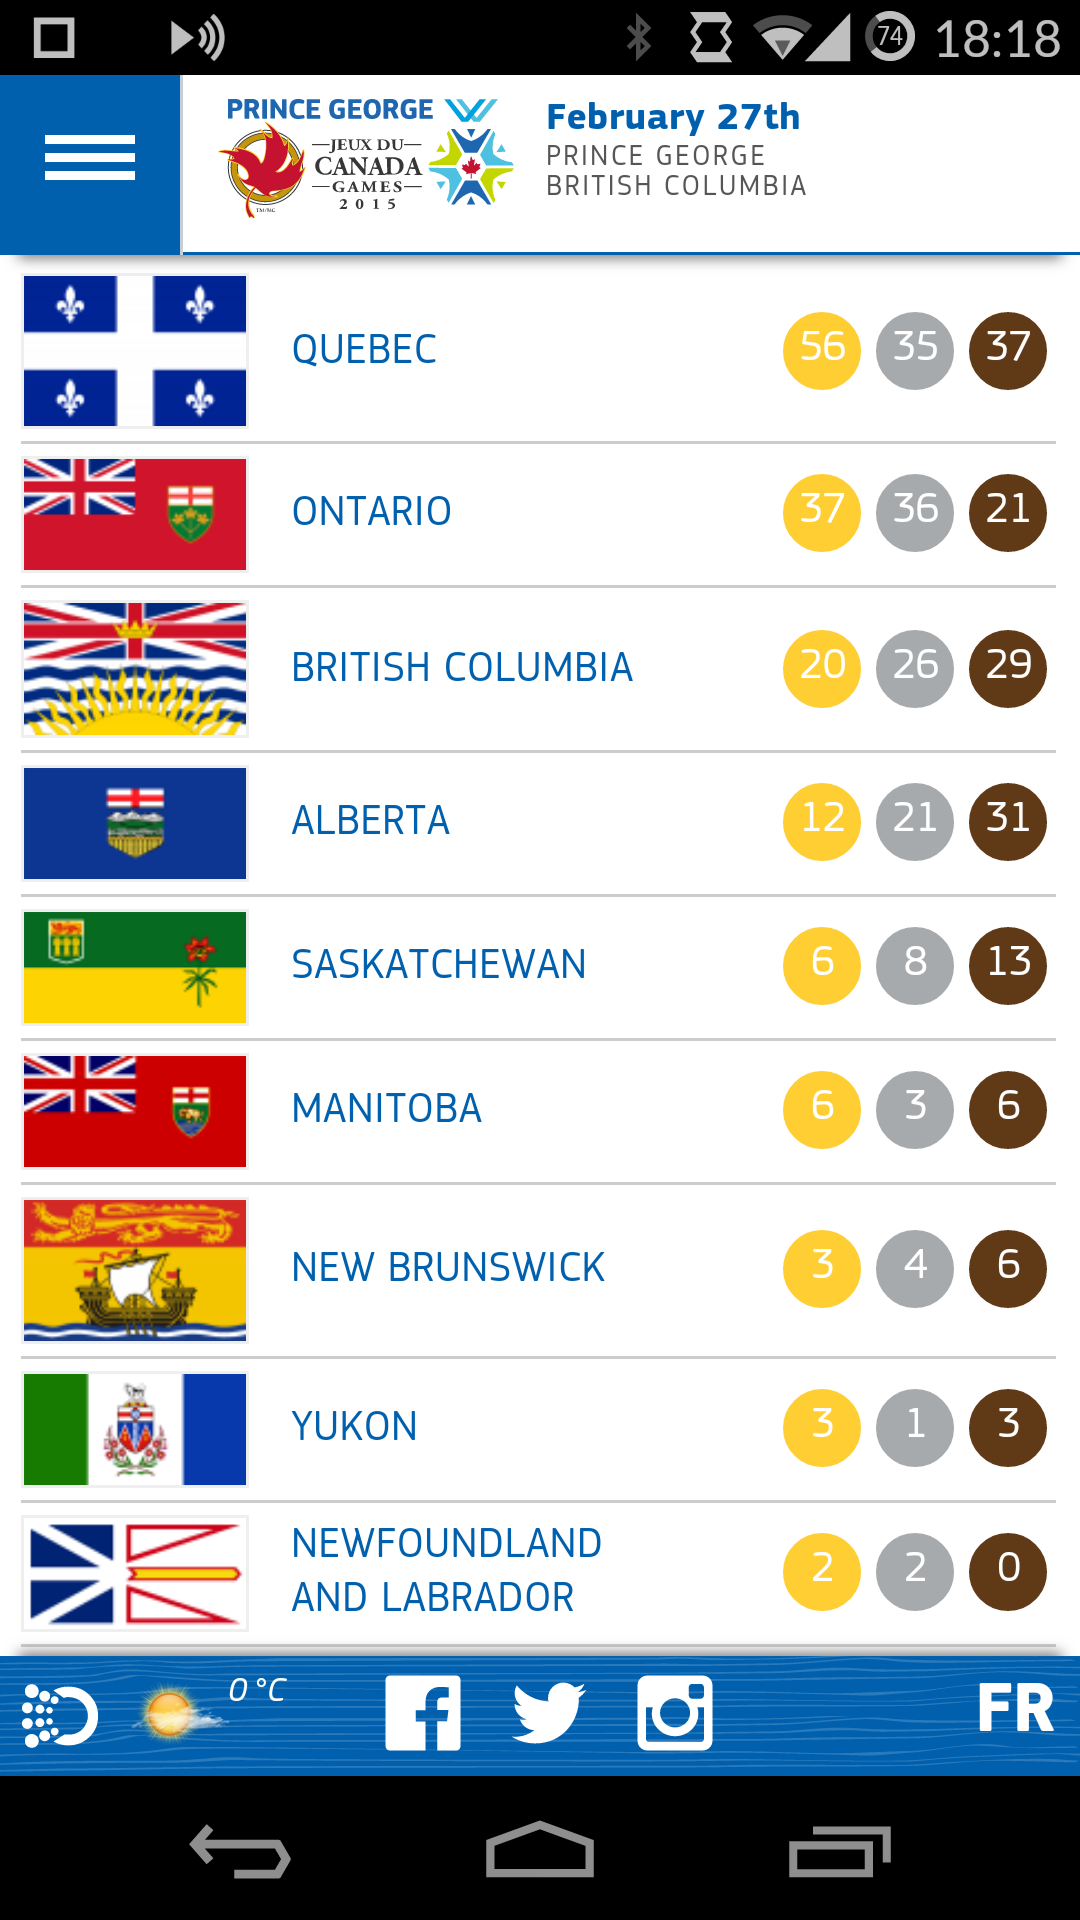 Canada Winter Games 2015 mobile site